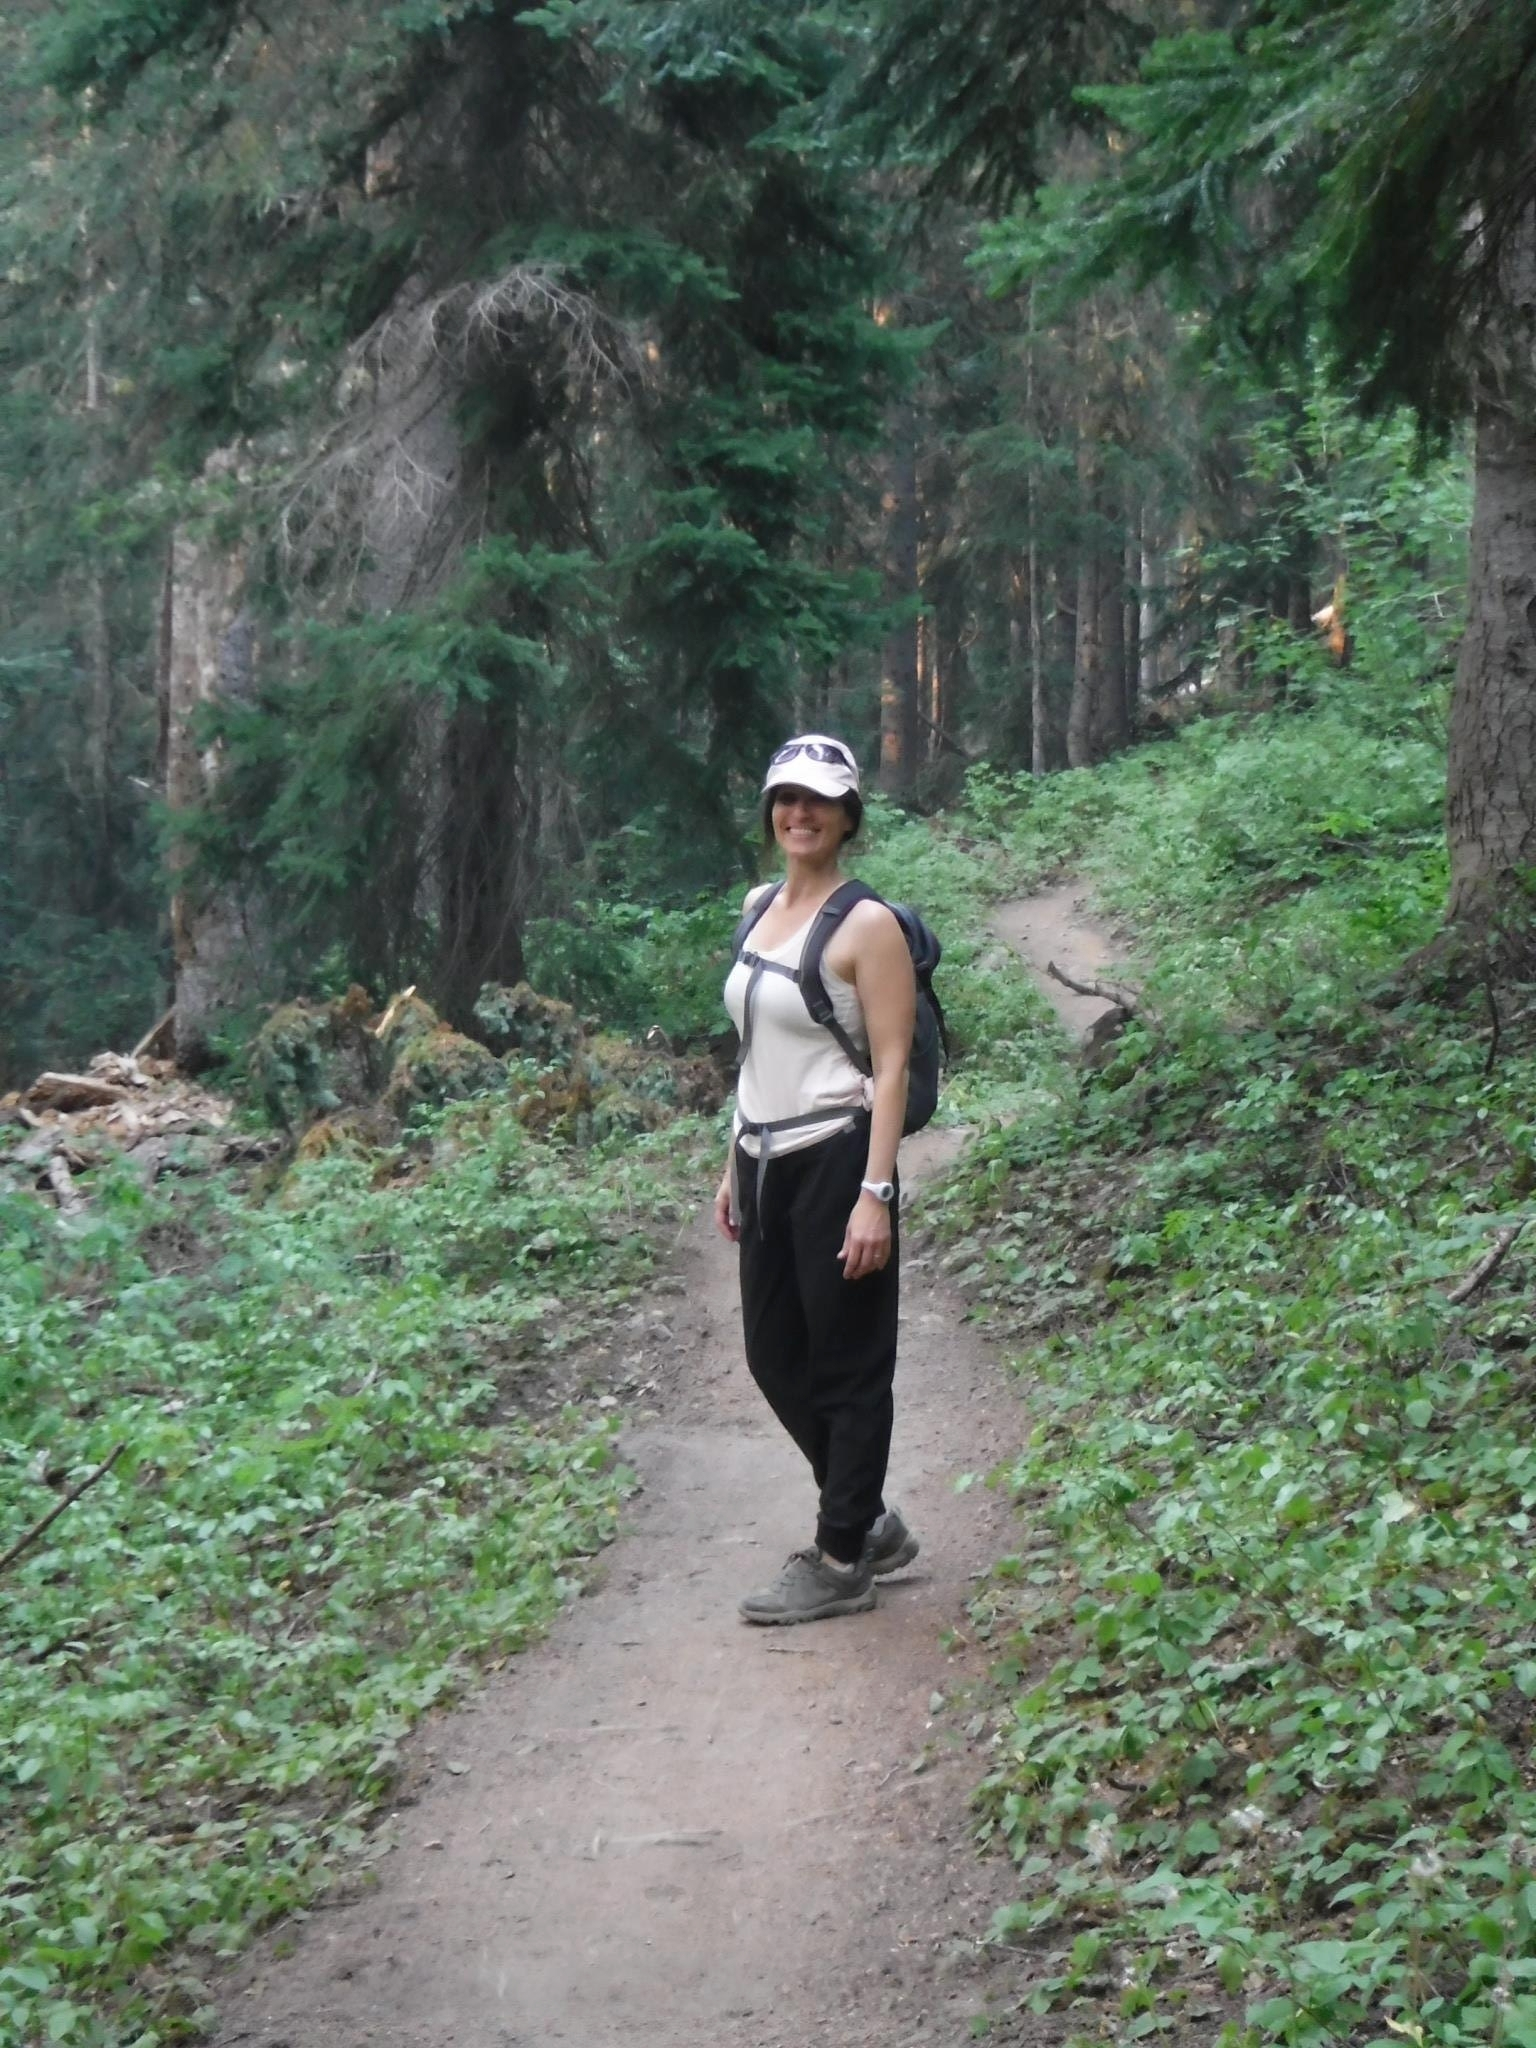 Among the Sitka spruce in North Cascades National Park